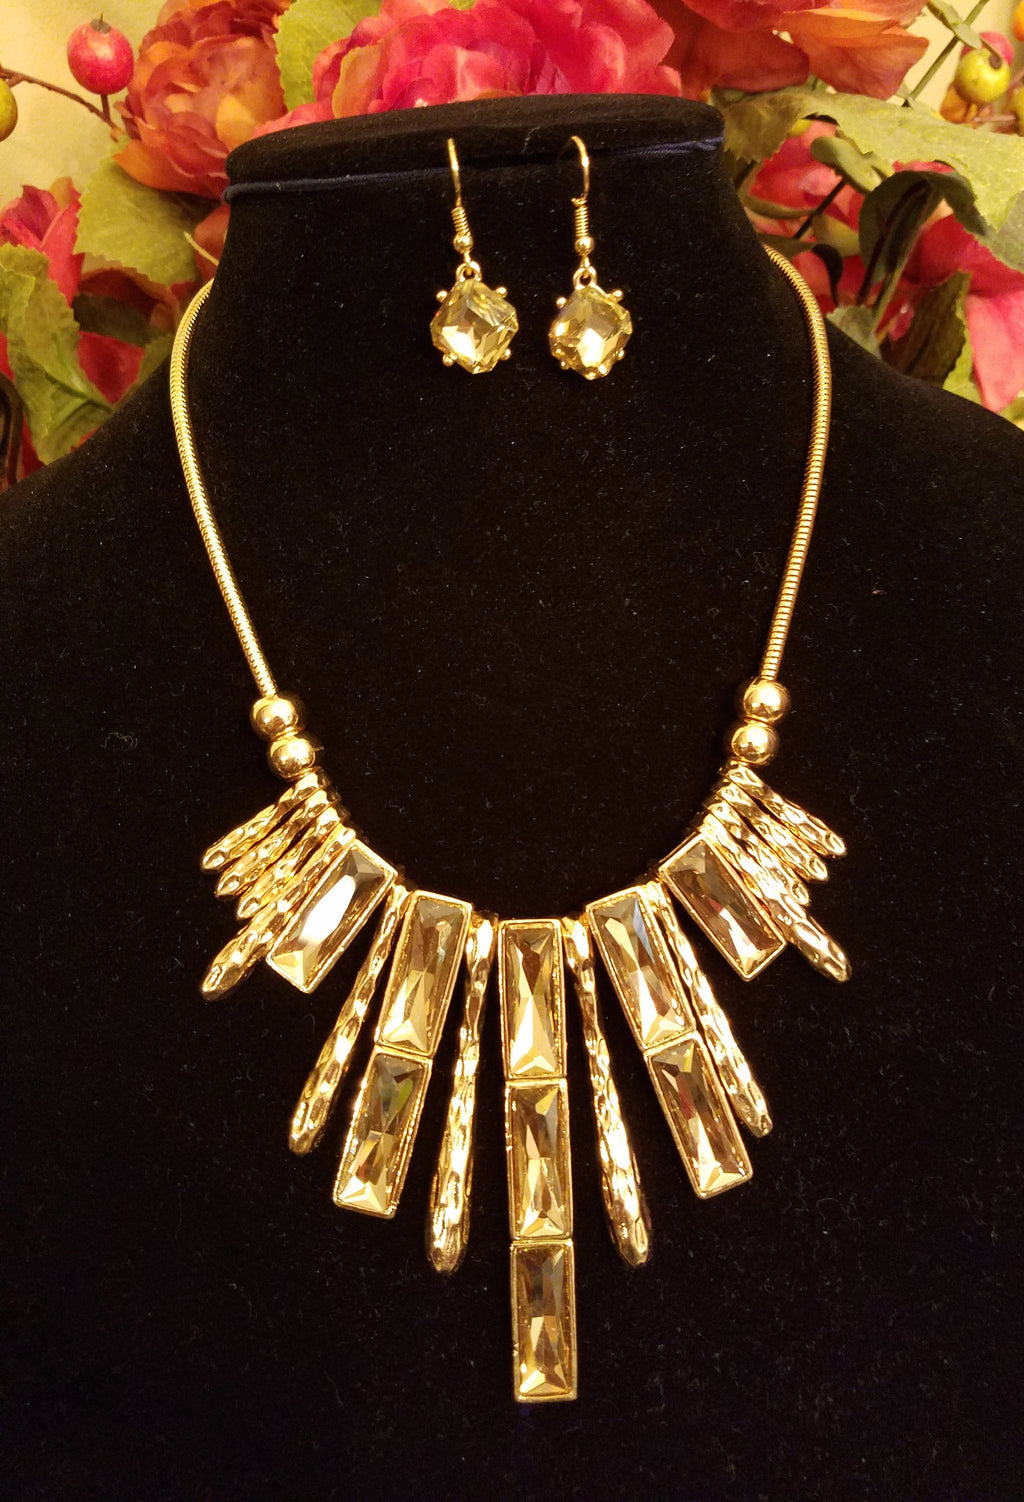 Golden Chocolate Bar Fashion Necklace Set - Bedazzled By Jeanelle